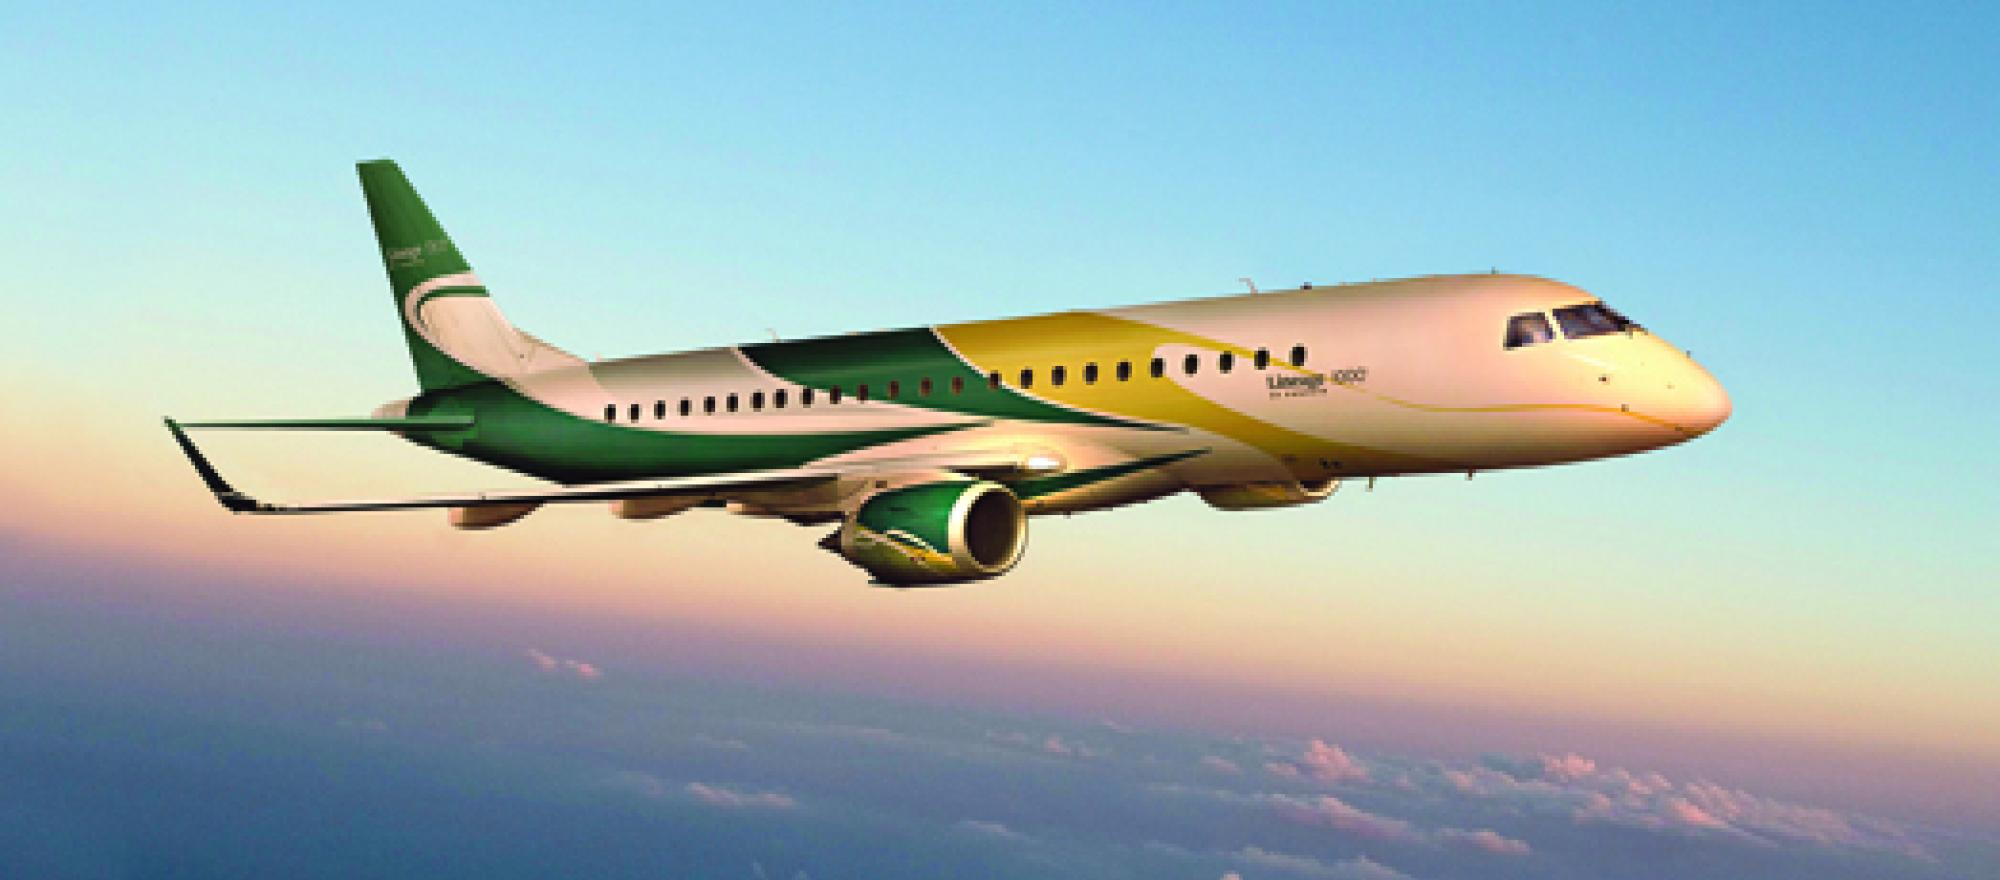 File embraer lineage 1000 interior forward cabin jpg wikimedia - 2016 Embraer Lineage 1000 Jlm Aviation Services